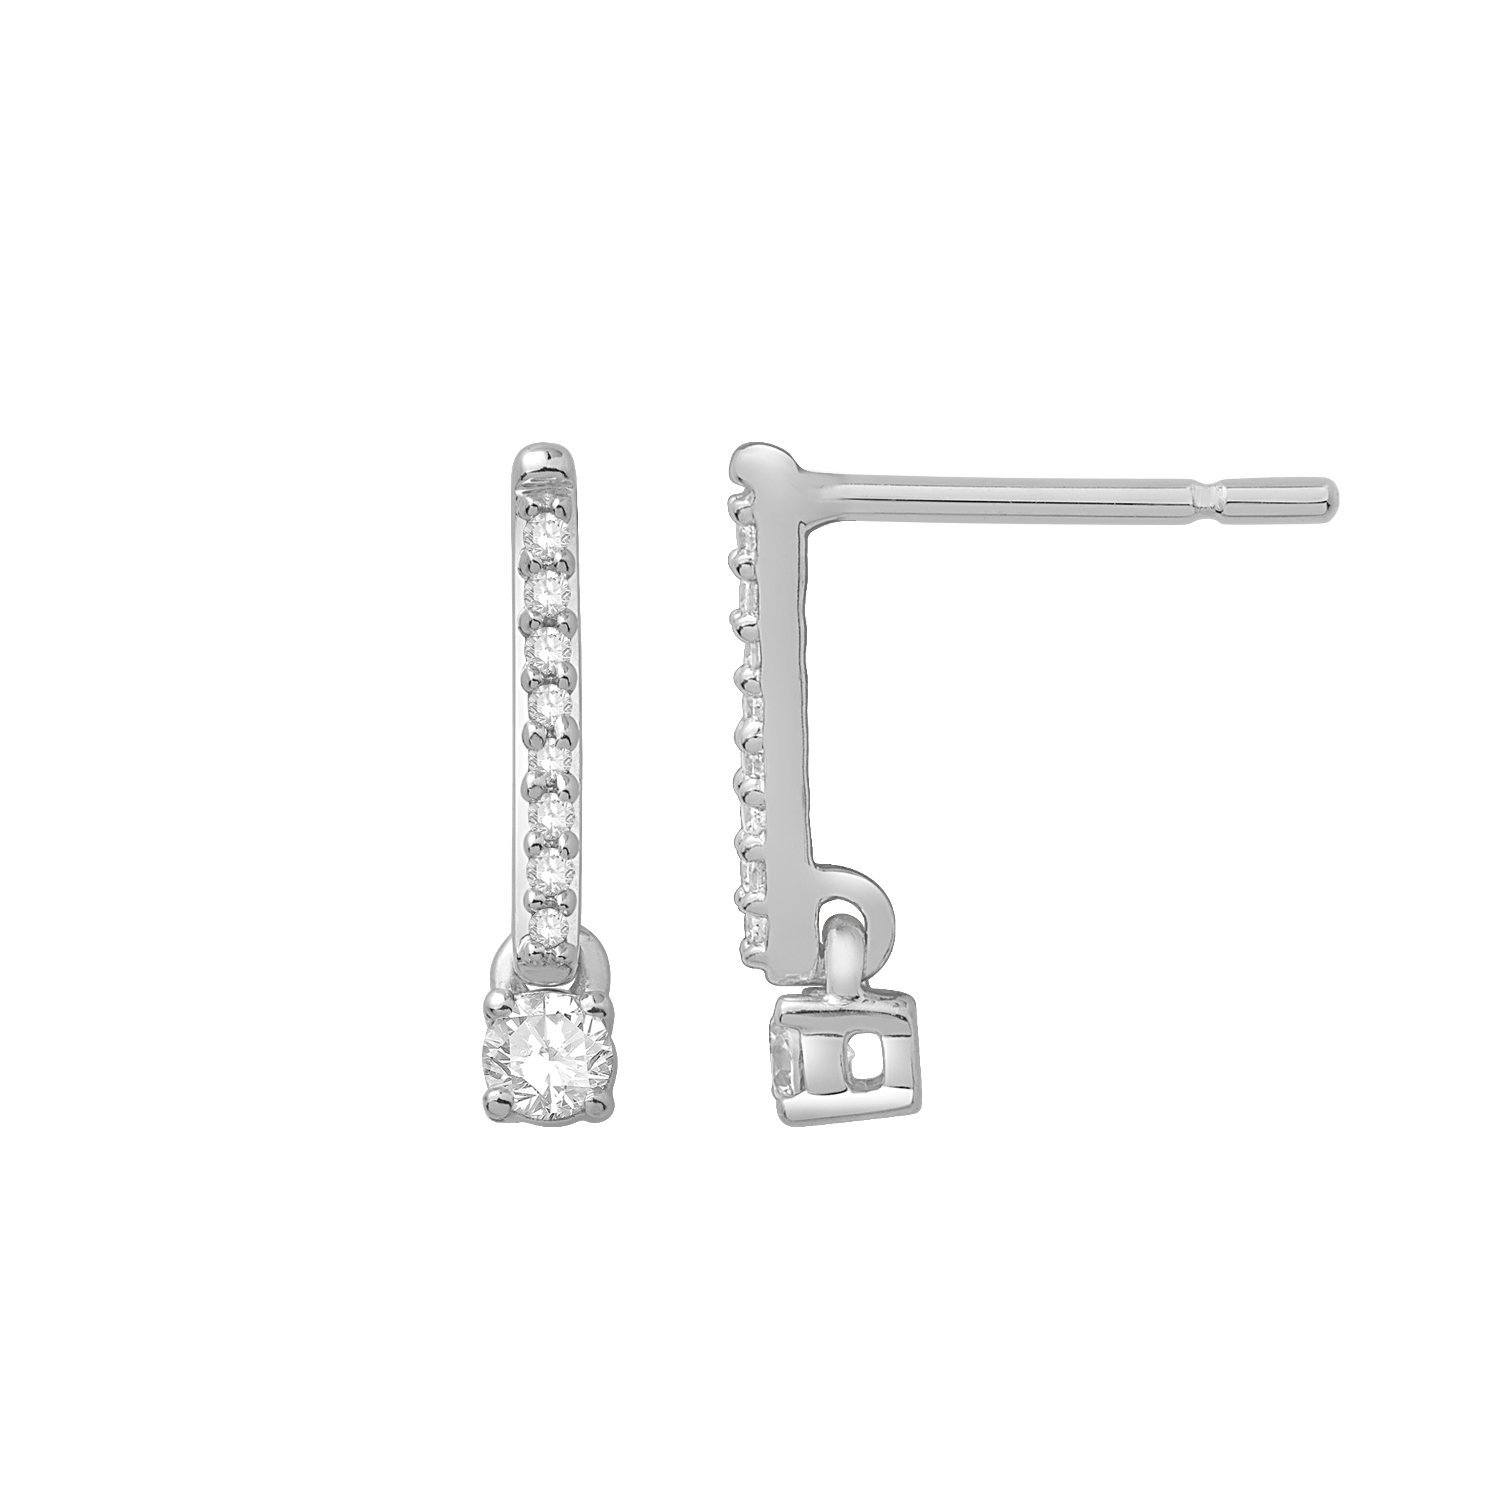 Boucles d'oreilles en or blanc et diamants de 0.19ct